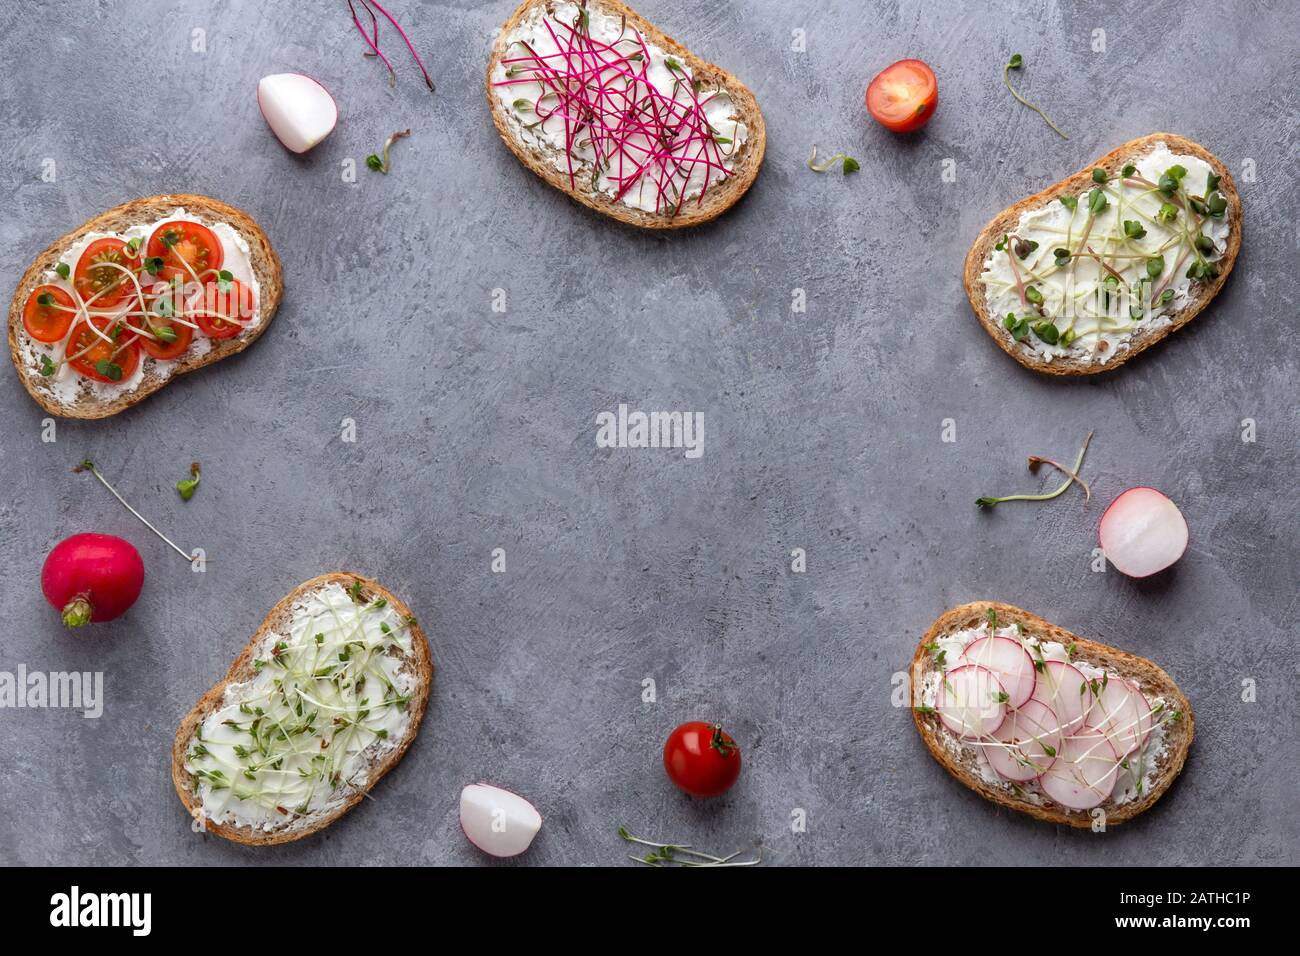 A frame of sandwiches with vegetables and microgreens on a gray concrete background. Copy space in the center Stock Photo